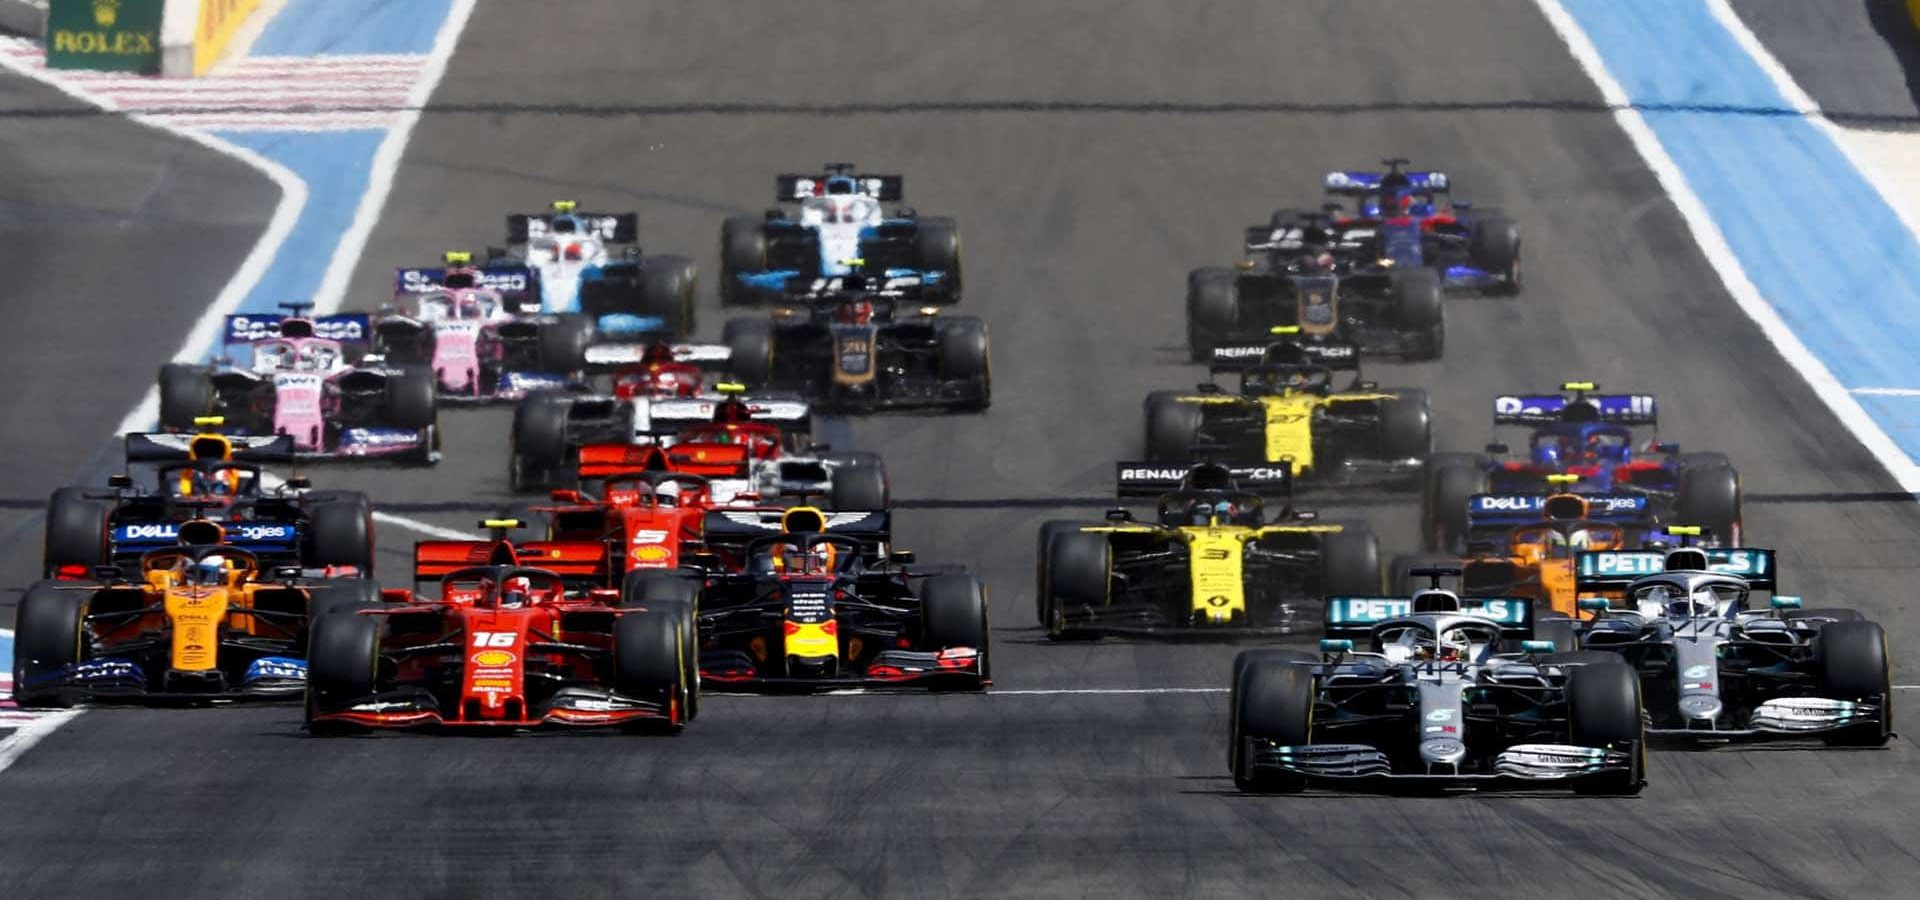 CIRCUIT PAUL RICARD, FRANCE - JUNE 23: Lewis Hamilton, Mercedes AMG F1 W10 leads Valtteri Bottas, Mercedes AMG W10 and Charles Leclerc, Ferrari SF90 at the start of the race during the French GP at Circuit Paul Ricard on June 23, 2019 in Circuit Paul Ricard, France. (Photo by Glenn Dunbar / LAT Images)